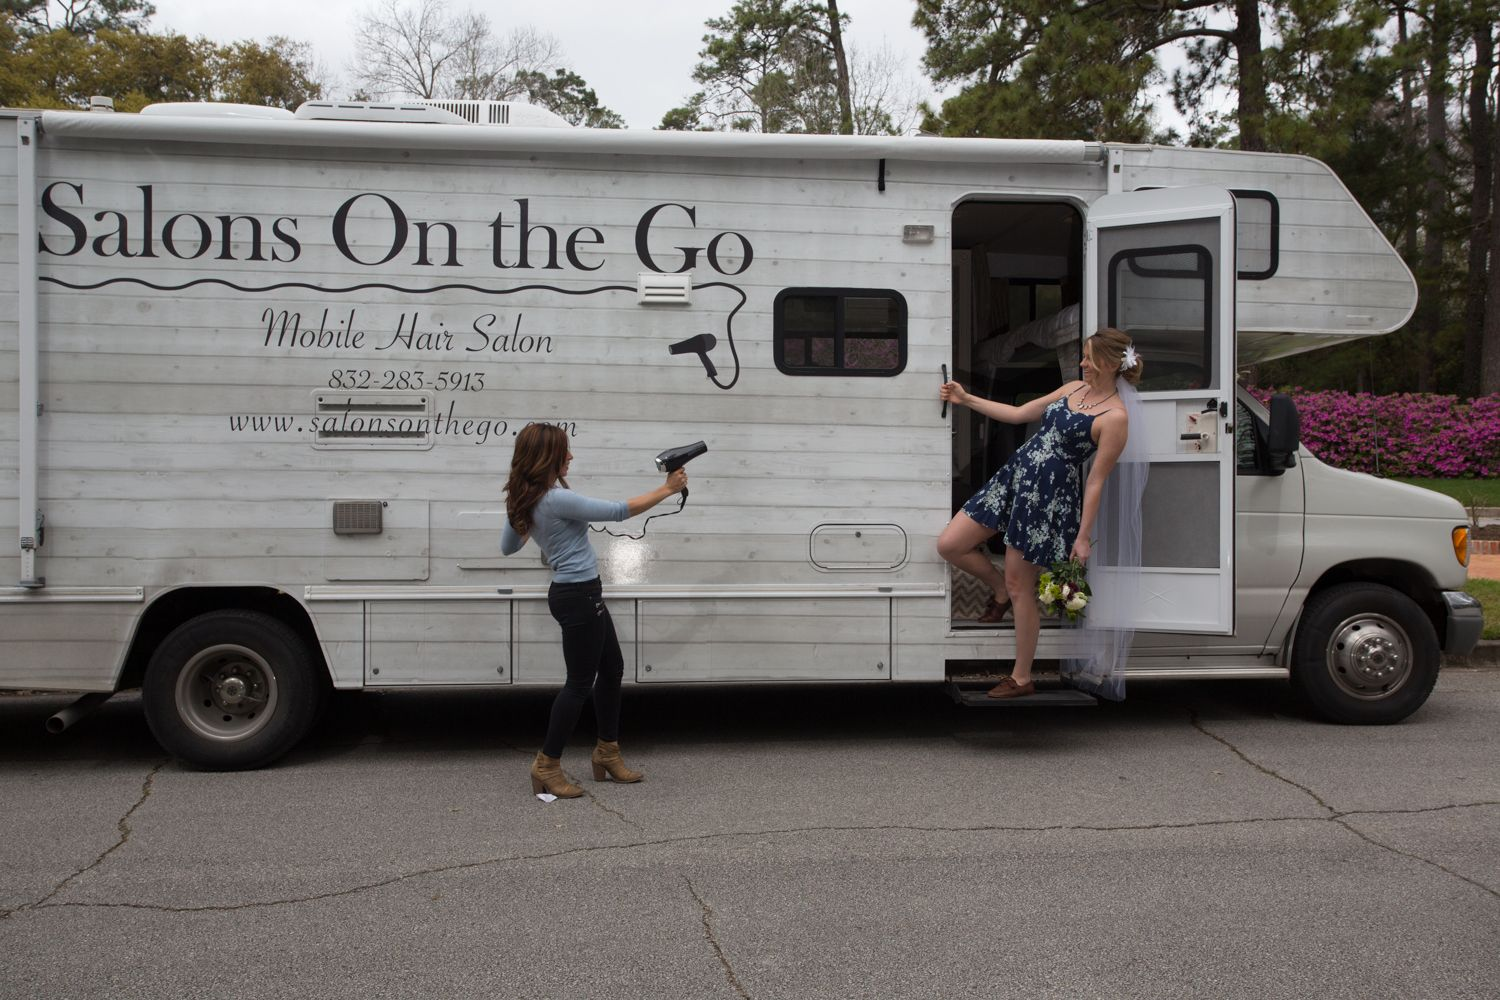 A Mobile Hair Salon Conveniently Located Where The Client Is Offering Services In Houston Tx